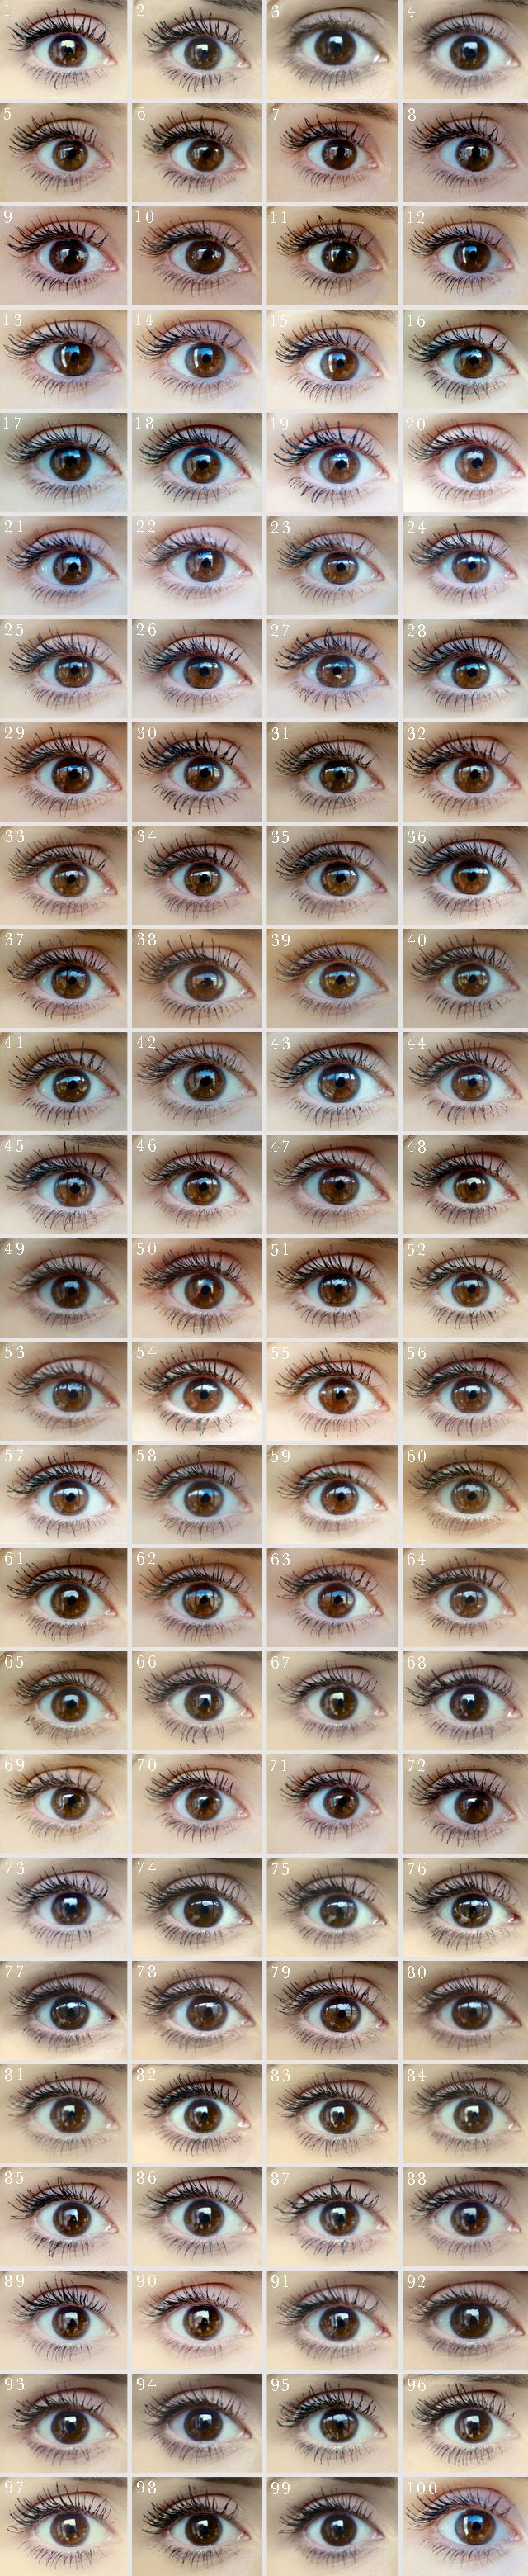 268 best beauty images on pinterest beauty tips beauty tricks and mascara 100 mascaras tested on one eye for comparison by cosmos beauty lab from what i could tell for big lashes loreal paris volume million geenschuldenfo Image collections